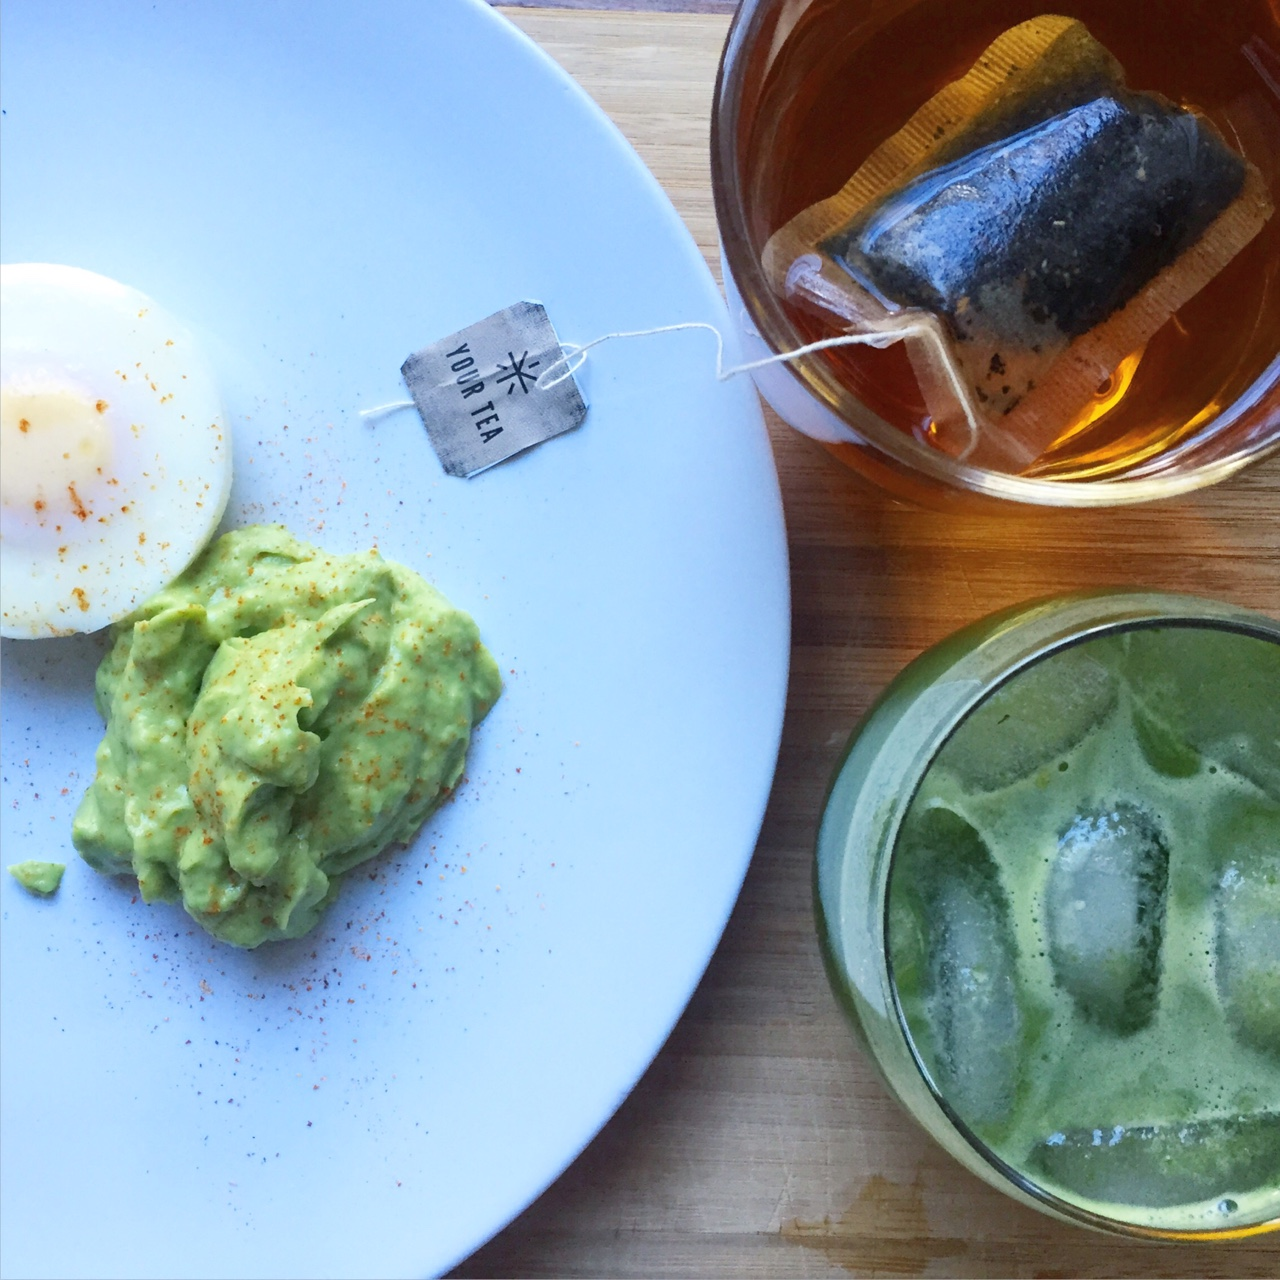 Morning Fuel Poached egg with avocado, chilli & lime along with a green juice and Your Tea's Tiny Tea ( tinyteatox ) Perfect way to feel fuller for longer! Green juice: 4 Apples 6 Pieces of Celery A Handful of Spinach A Couple of mint Leaves 1 Passionfruit S H E